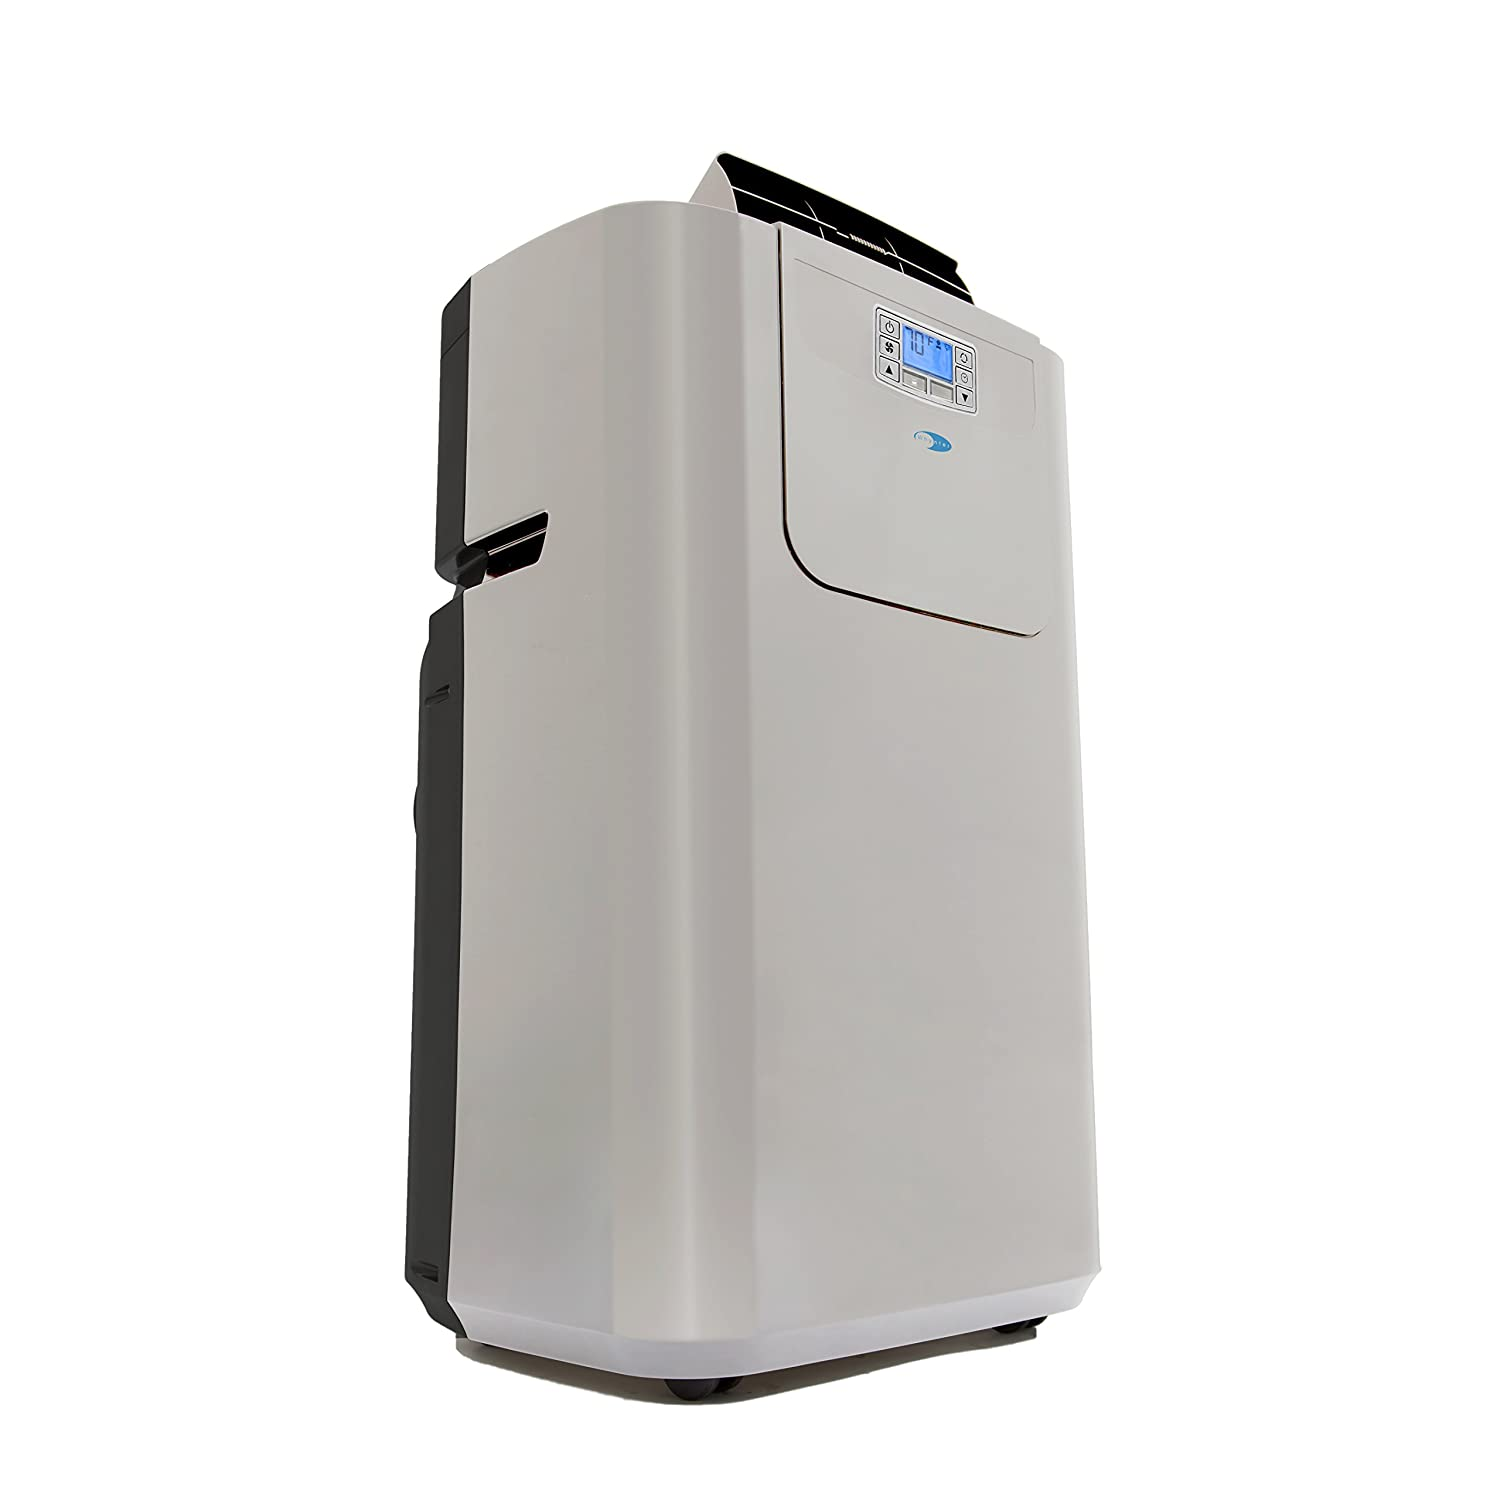 Best Portable Air Conditioner For 2019 In Depth Review